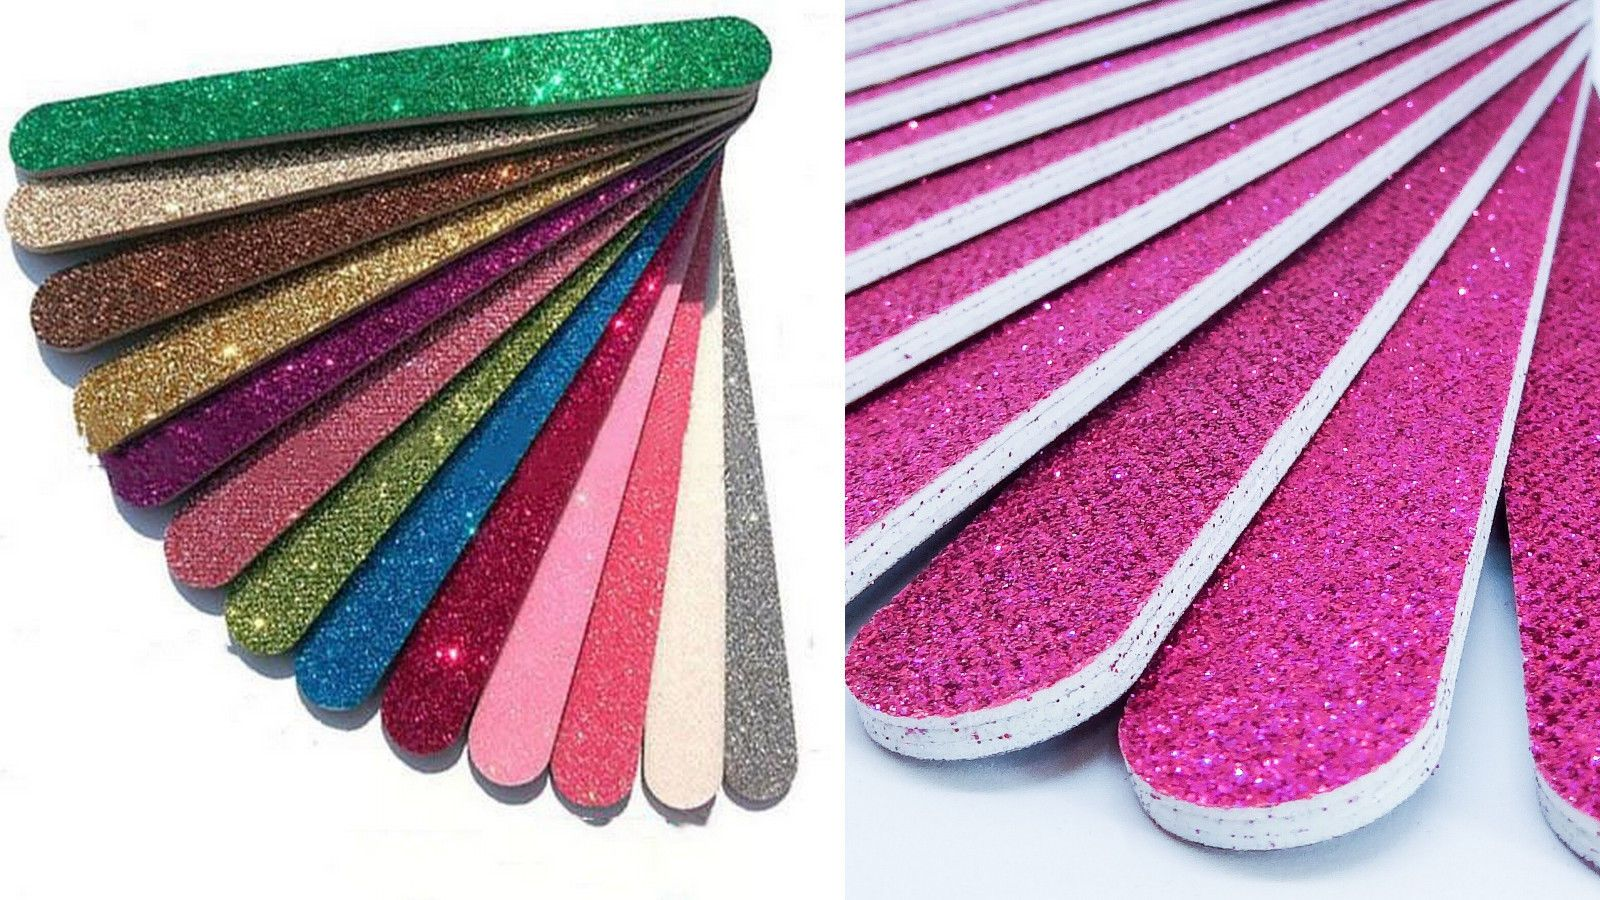 NEW PURPLE SPARKLY GLITTER EMERY BOARD NAIL FILE BUFFER set of 5 ...